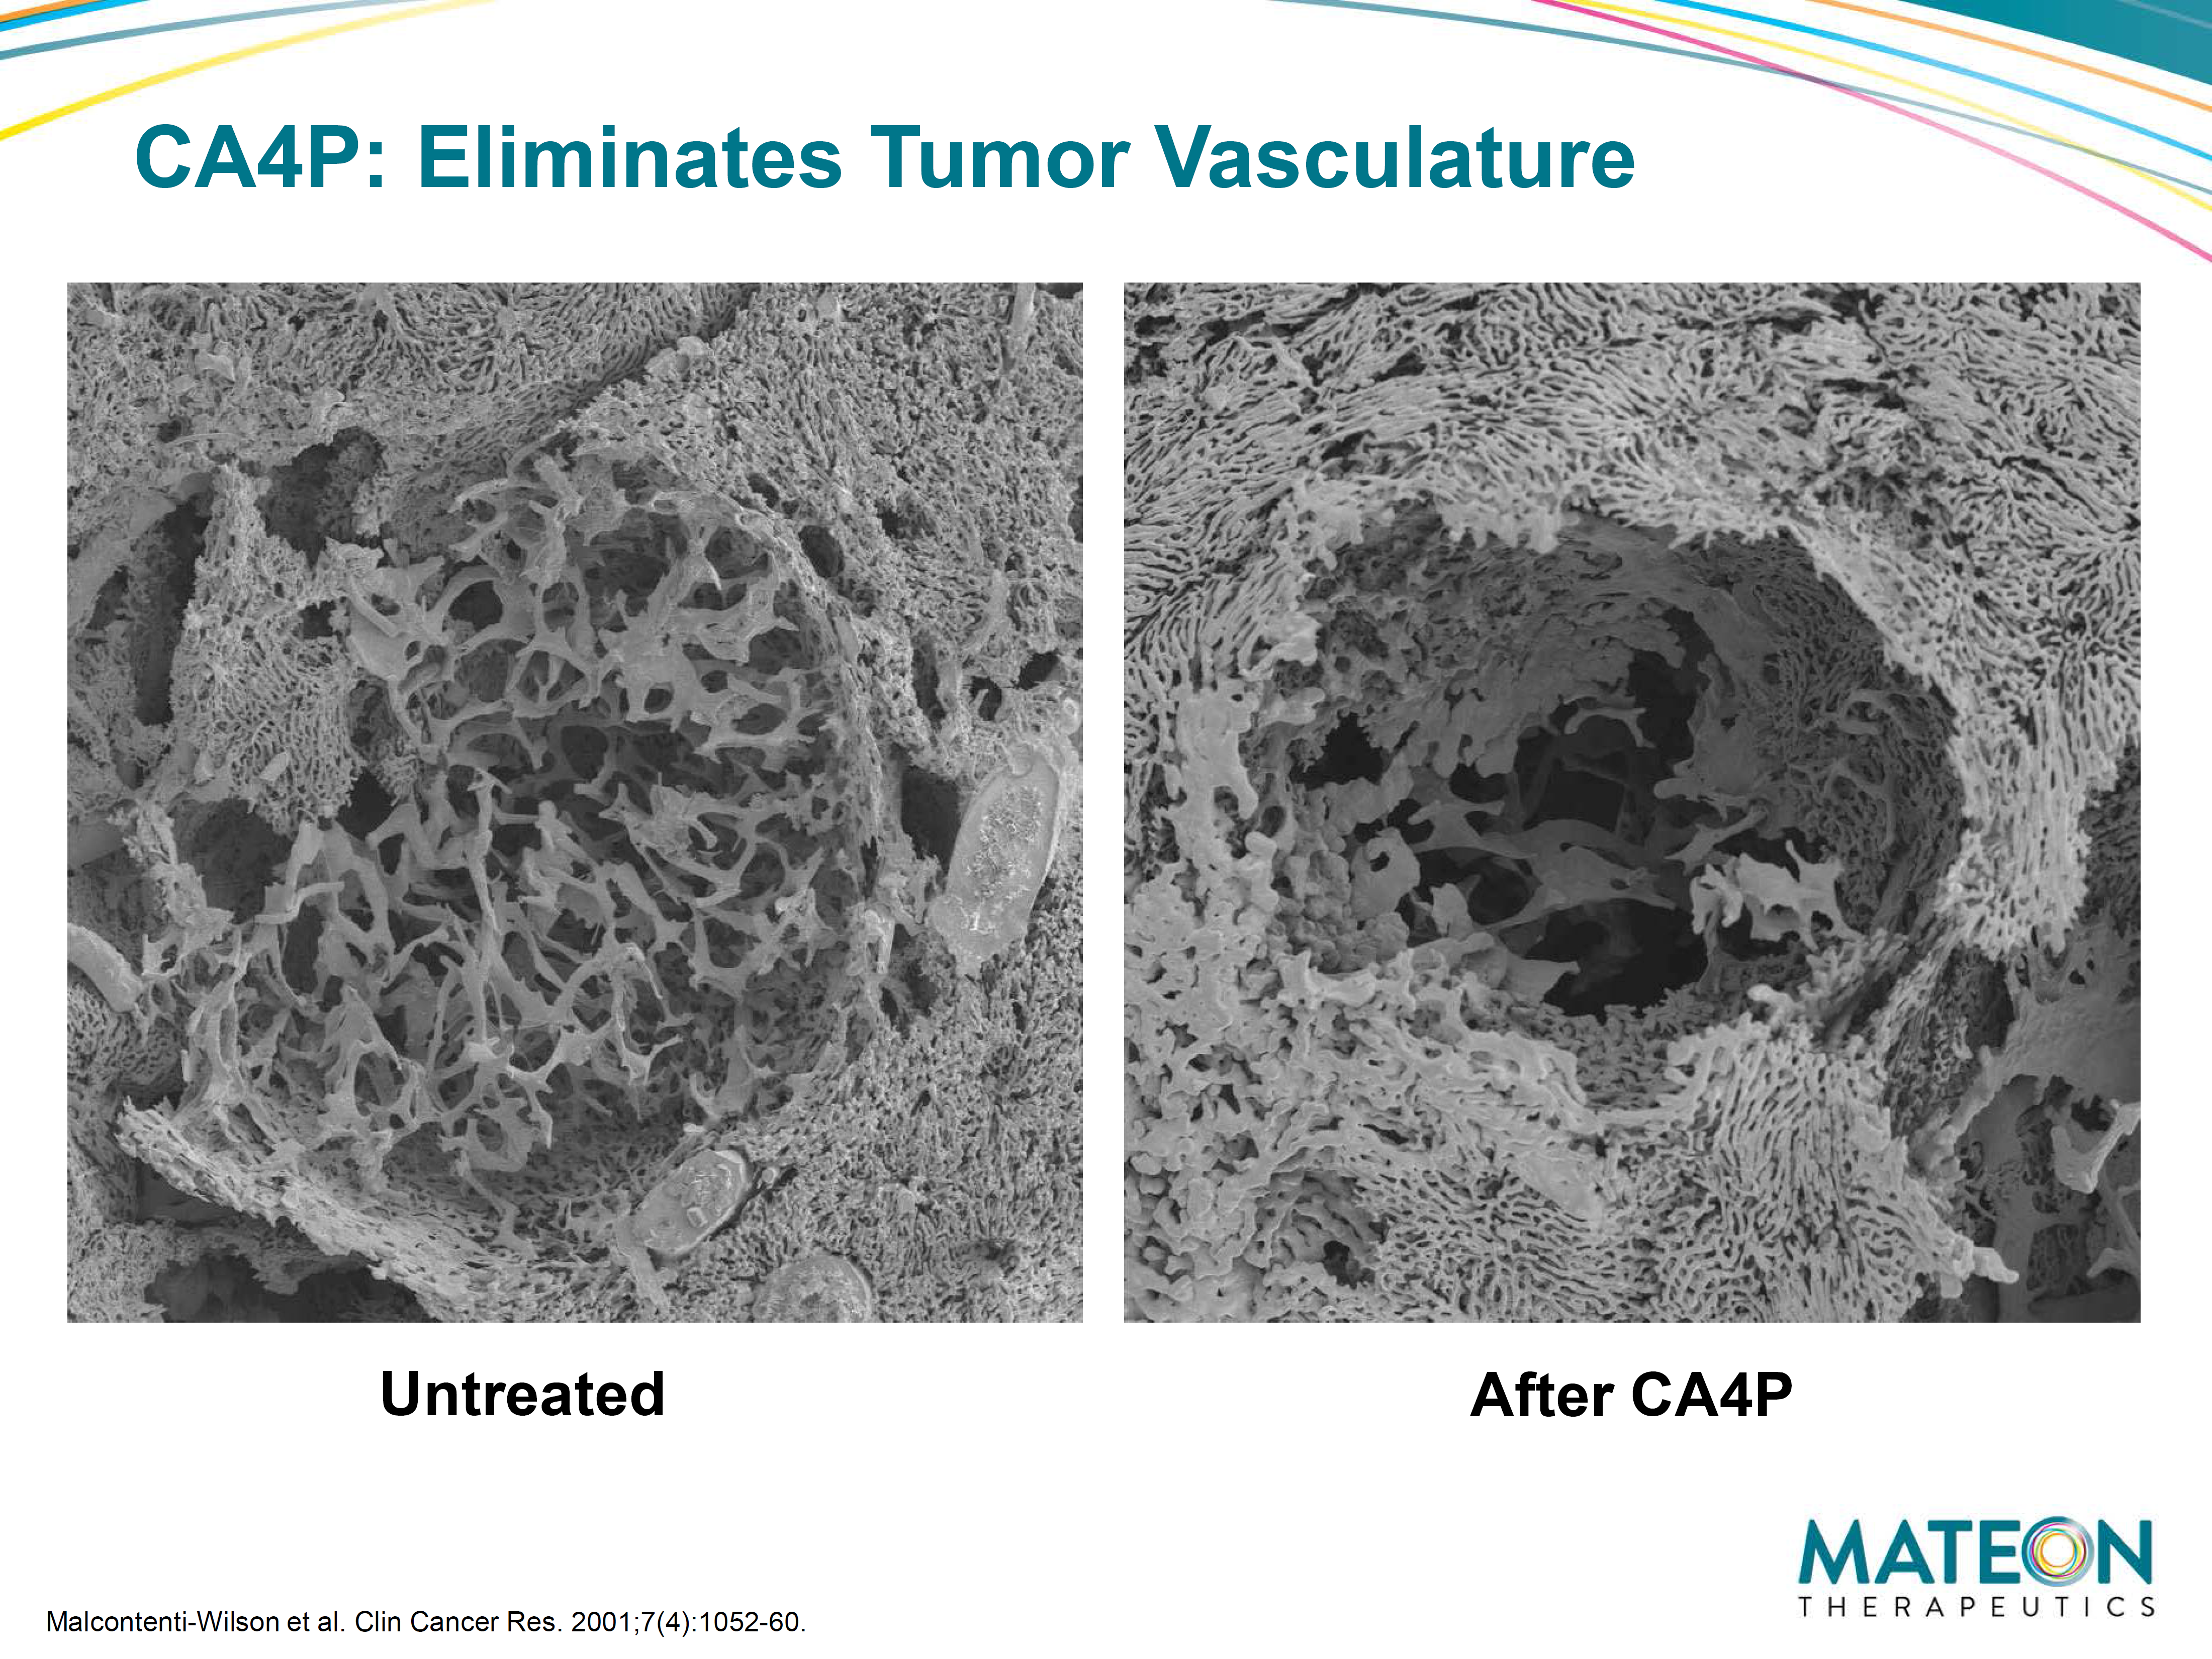 Figure 3: SEM (scanning electron microscope) of corrosion casts on liver metastasis. Untreated (left) figure shows dense tumor vessels at host-tumor interface. The right figure shows marked reduction of the patient's tumor vasculature post treating with CA4P 100mg/kg. Mateon therapeutics